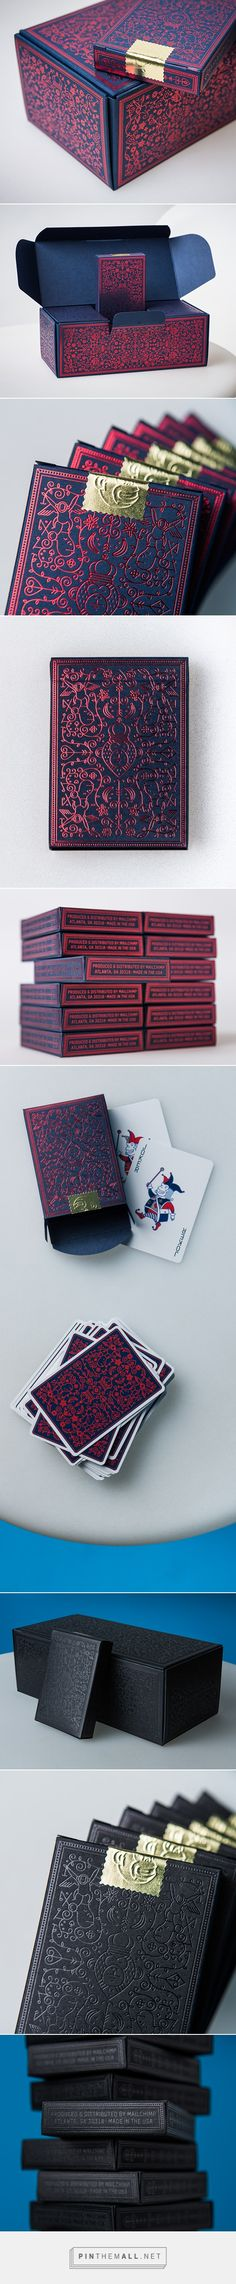 MailChimp Playing Cards | Lovely Package... - a grouped images picture - Pin Them All